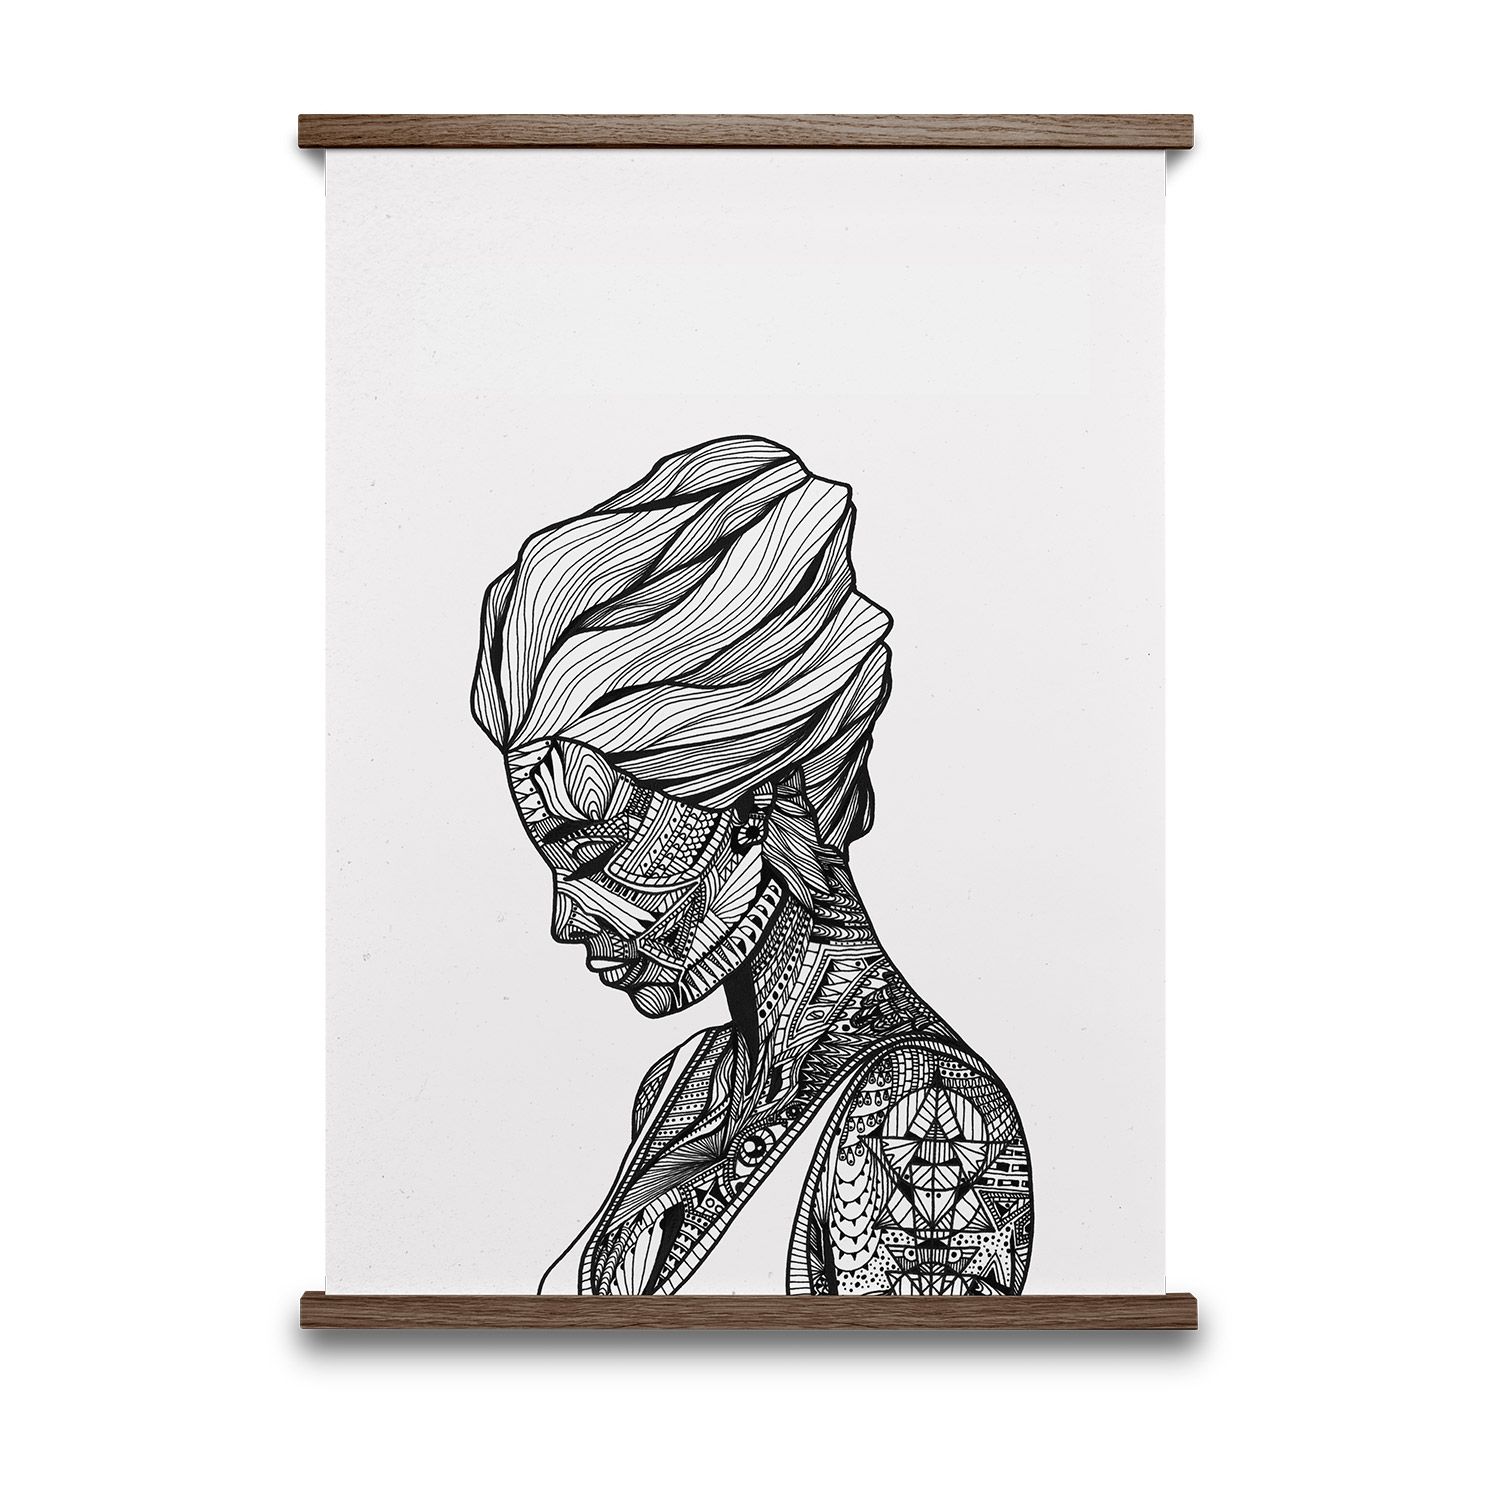 Reflection Poster 50x70 cm